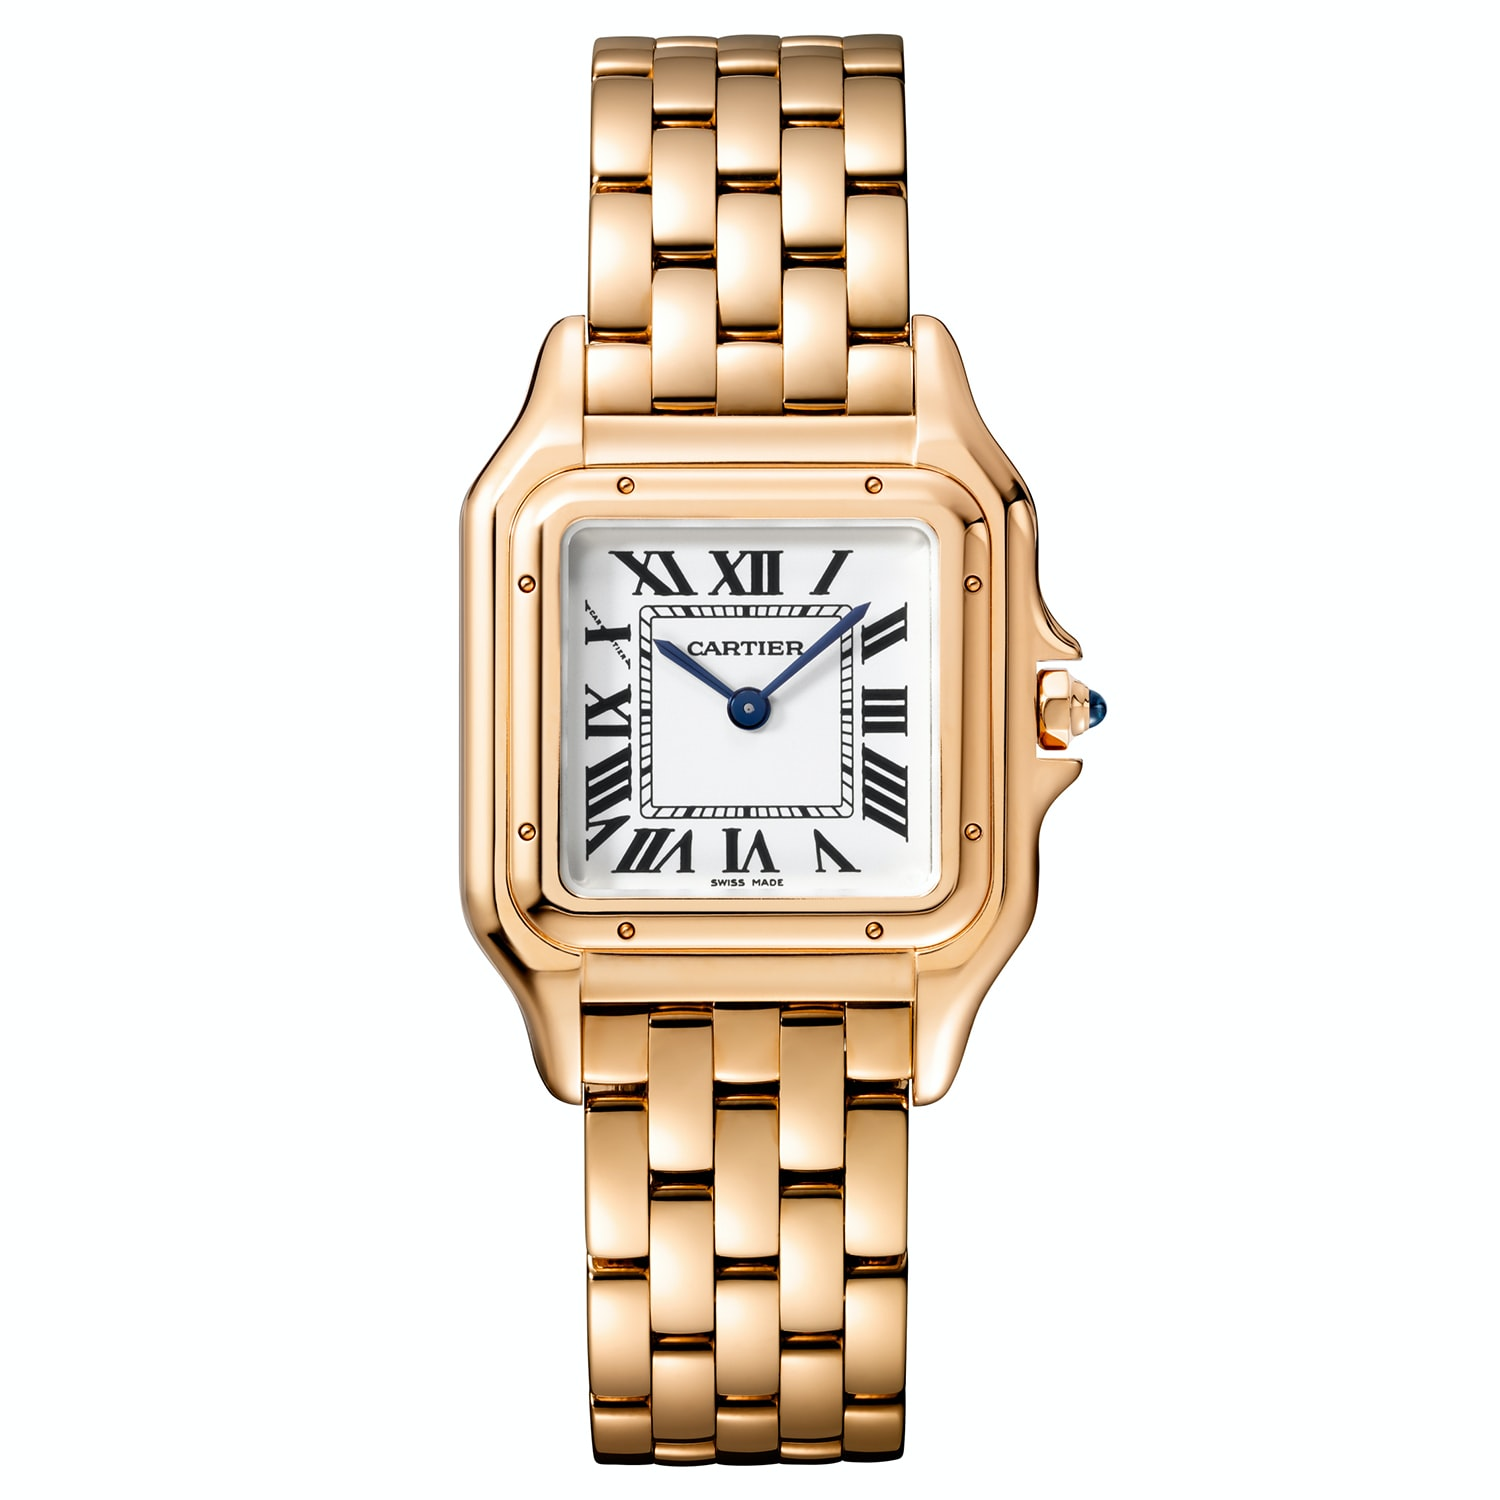 Panthère De Cartier medium rose gold Introducing: The Cartier Panthère De Cartier Collection, Re-Introduced For 2017 Introducing: The Cartier Panthère De Cartier Collection, Re-Introduced For 2017 yu